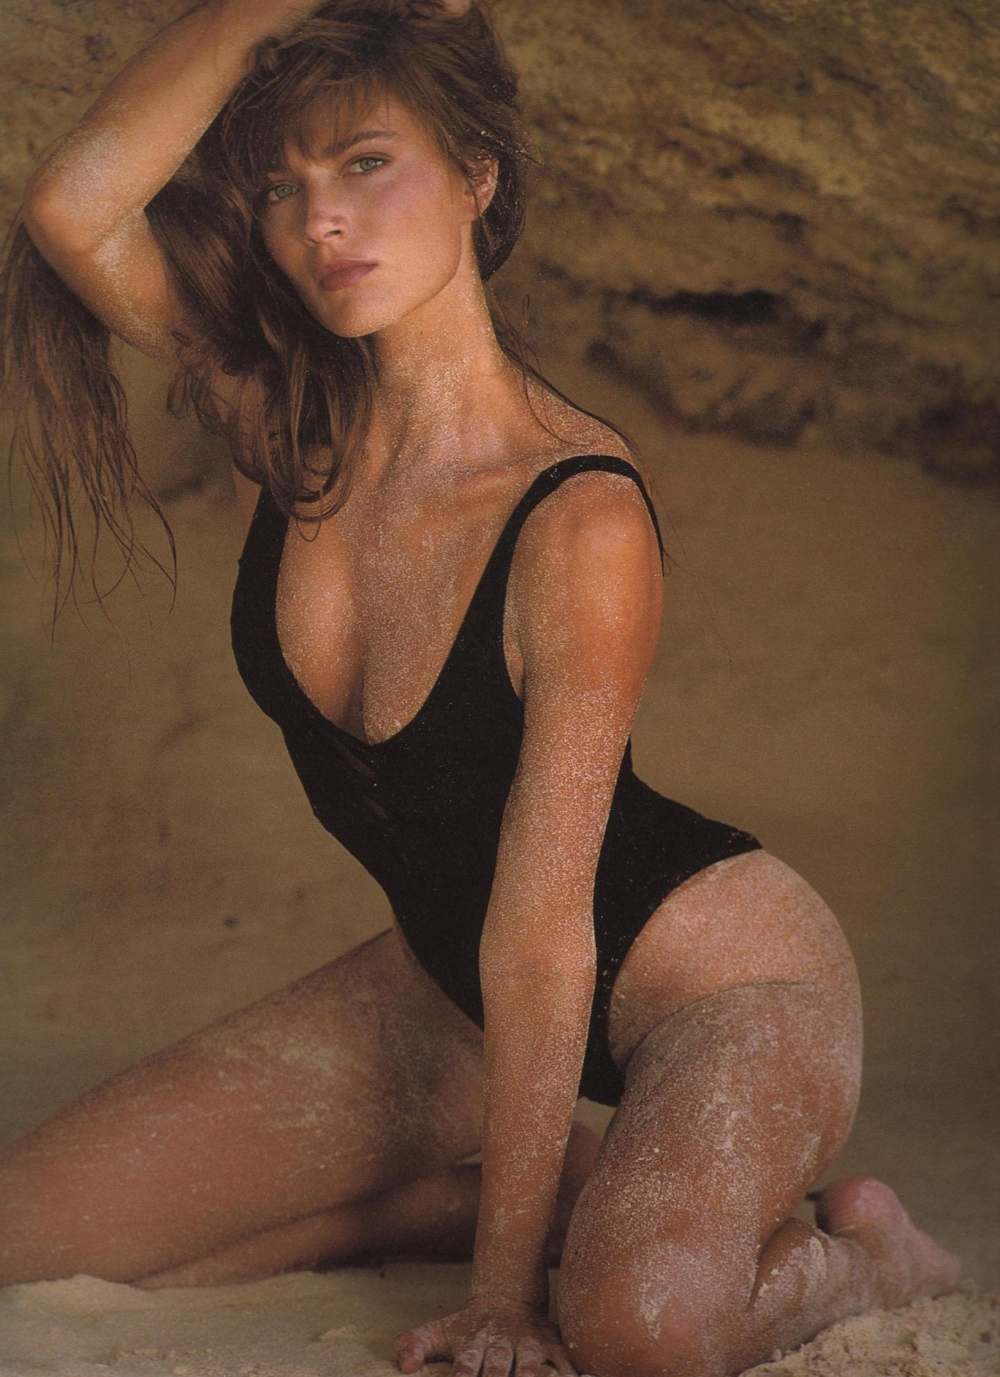 paulina porizkova 1983paulina porizkova 2016, paulina porizkova dallas, paulina porizkova 2014, paulina porizkova young, paulina porizkova estee lauder, paulina porizkova husband, paulina porizkova 1983, paulina porizkova height, paulina porizkova pic, paulina porizkova family, paulina porizkova 1980, paulina porizkova husband ric ocasek, paulina porizkova sons, paulina porizkova pictures, paulina porizkova wiki, paulina porizkova playboy august 1987, paulina porizkova instagram, paulina porizkova sports illustrated, paulina porizkova arizona dream, paulina porizkova desperate housewives